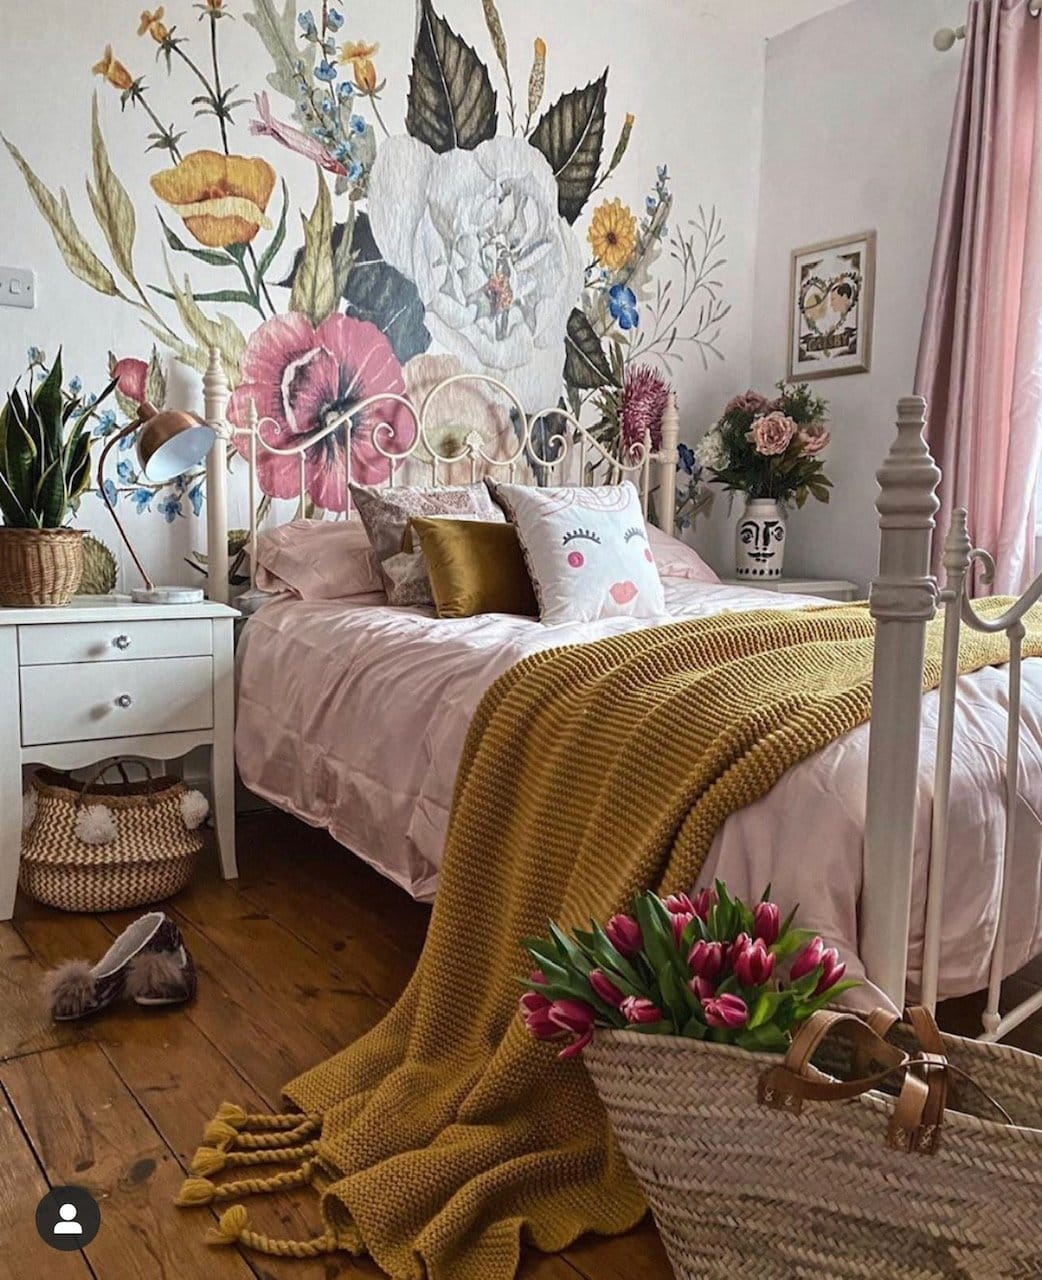 floral wallpaper in the bedroom with pink bedding, mustard throw and tulips in a basket.